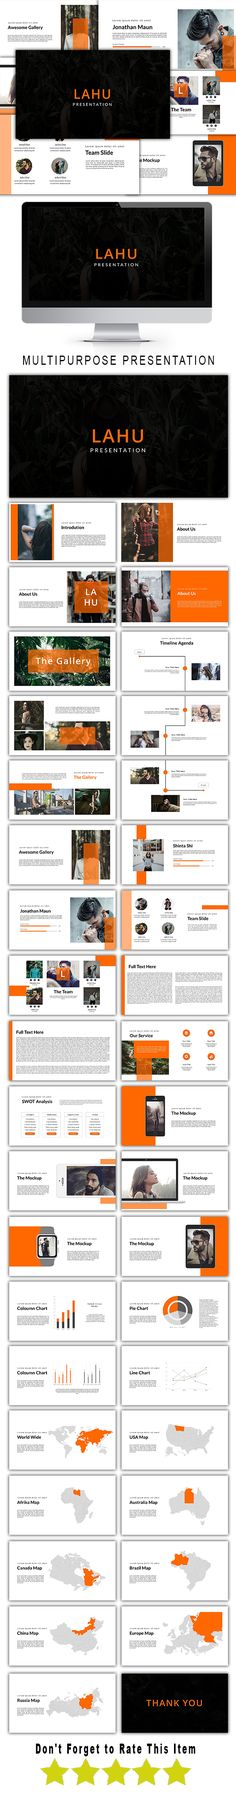 Lahu Multipurpose Powerpoint Template MAIN FILE:  Images Placeholder Drag And Drop image Theme Black and White Option, Easy to change colors, Fully editable text, photos, music & other elements 39 Unique Custom Slides 39 Total Slides Vector Icons, elements & PNG included in Files Clean Theme Version PPT & PPTX Files All Elements included Super Custom Animated effects